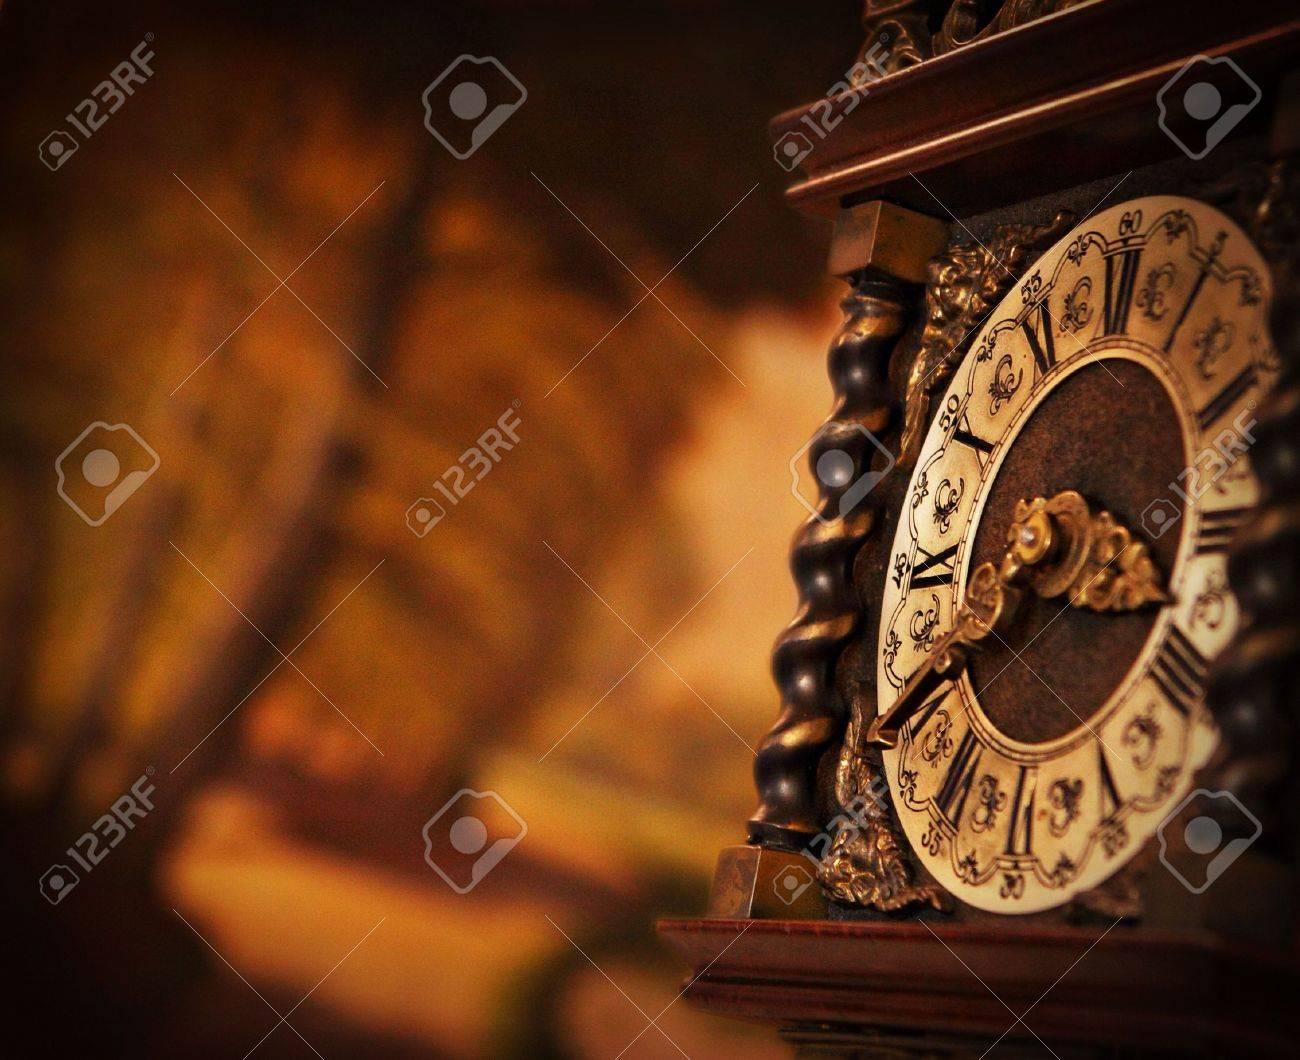 Antique Wall Clock Stock Images, Royalty-Free Images &- Vectors ...